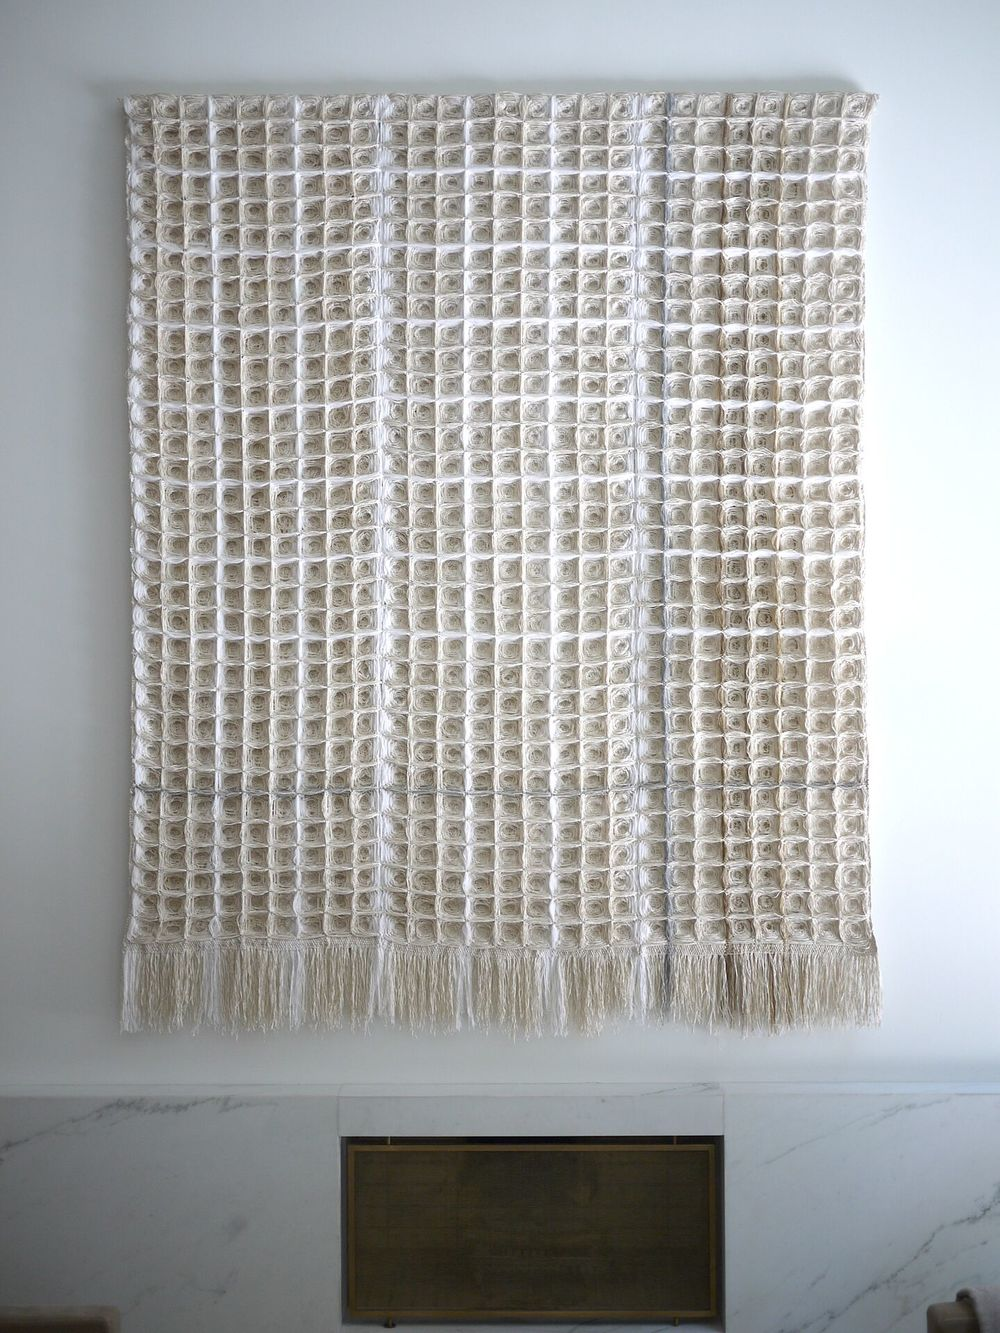 Bridge 397, Hiroko Takeda, 2015, NY Studio, 100%22hx 80%22w, mixed natural fibers.jpg